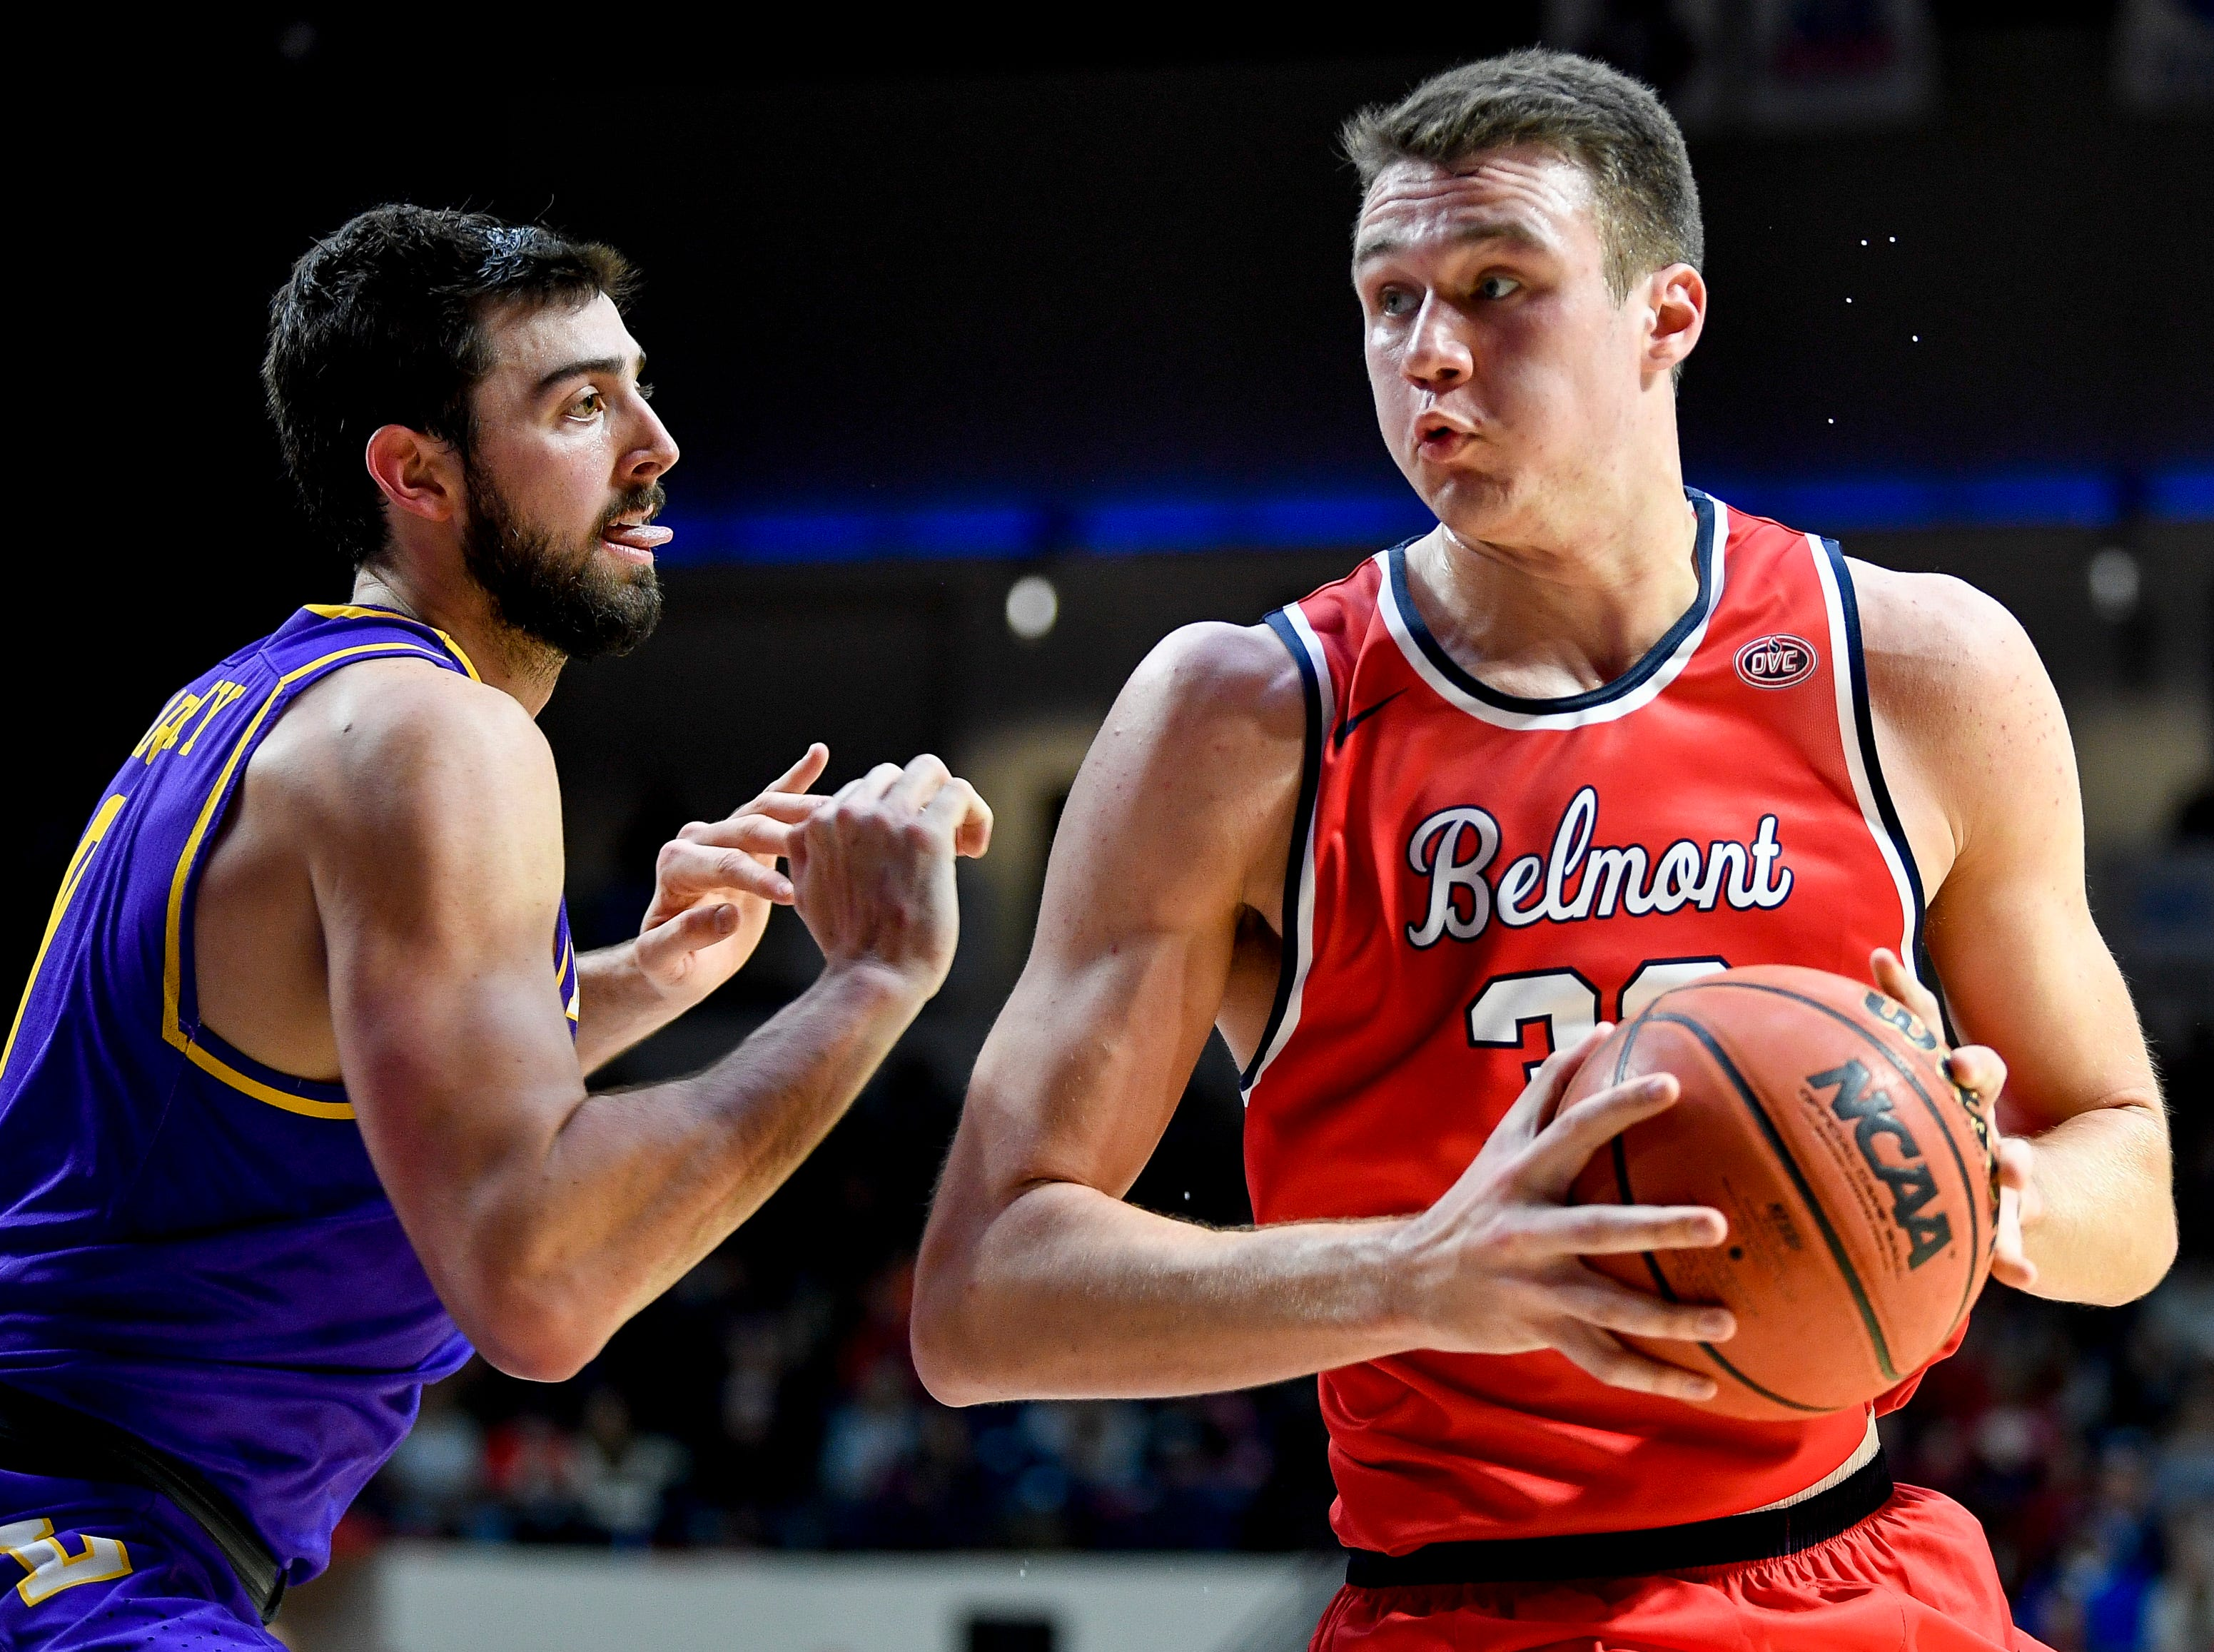 Belmont center Nick Muszynski (33) battles with Lipscomb forward Rob Marberry (0) during the first half at the Curb Event Center in Nashville, Tenn., Tuesday, Dec. 4, 2018.